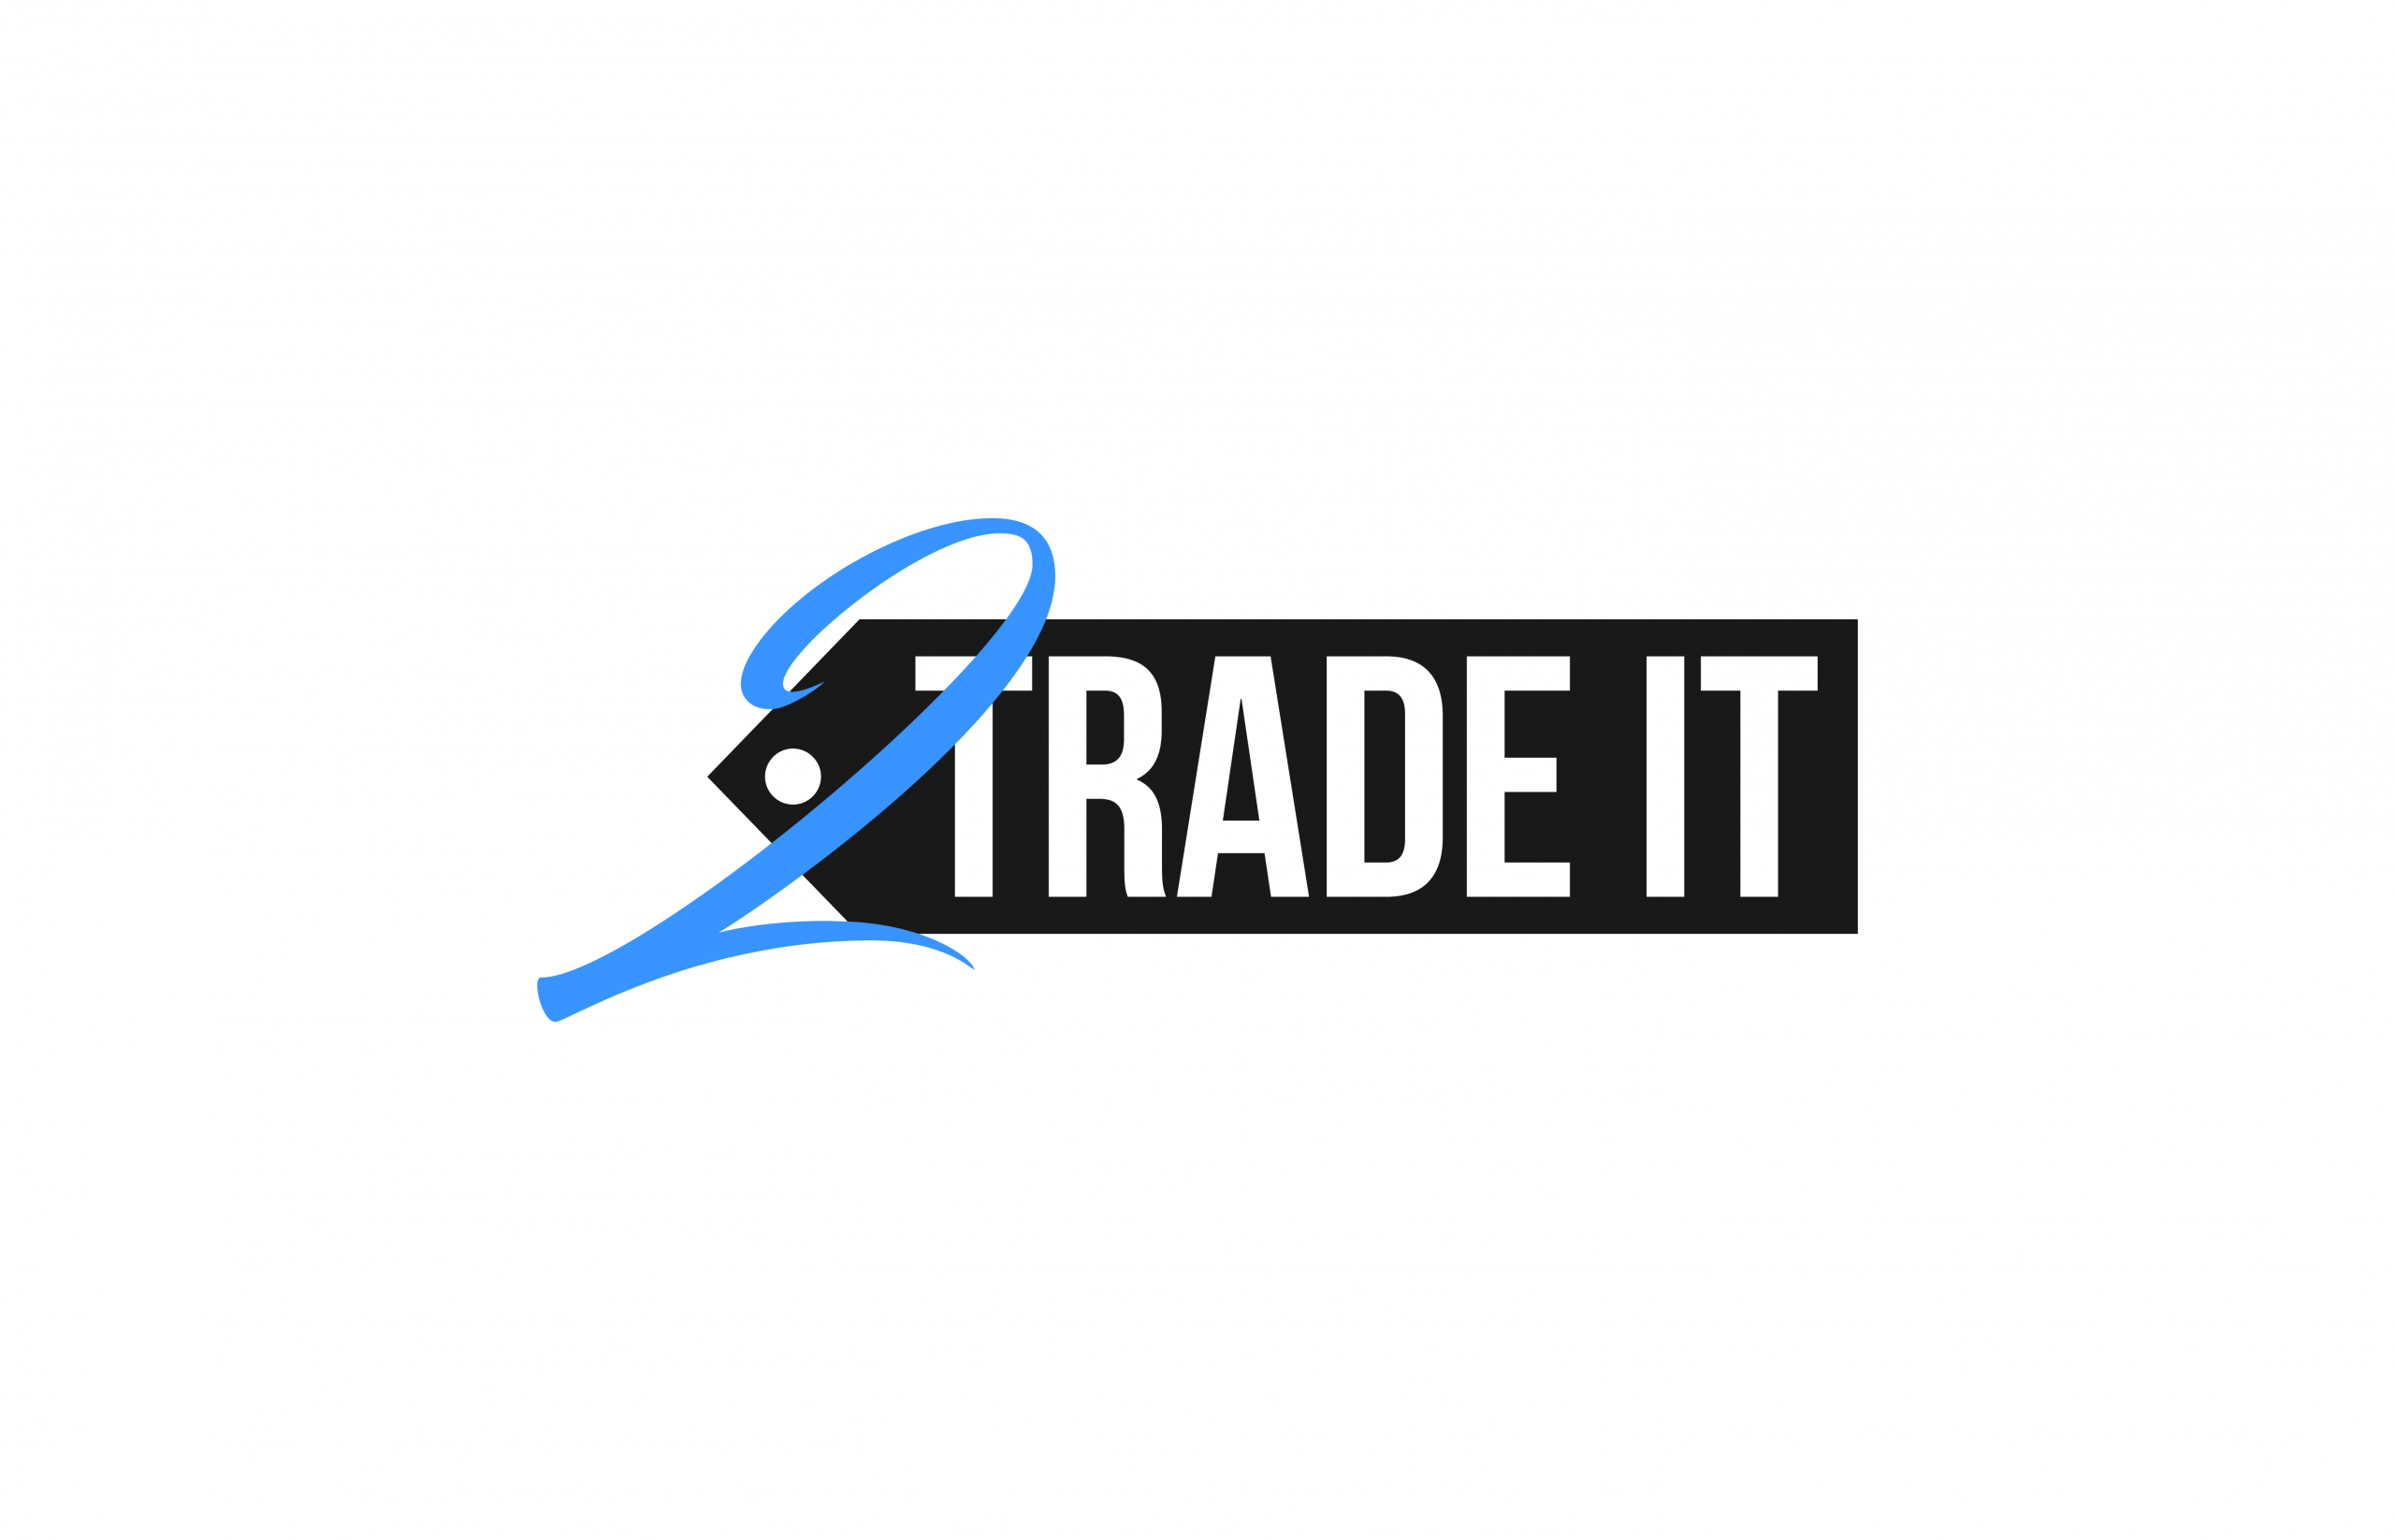 2 Trade It - NZ's most affordable marketplace